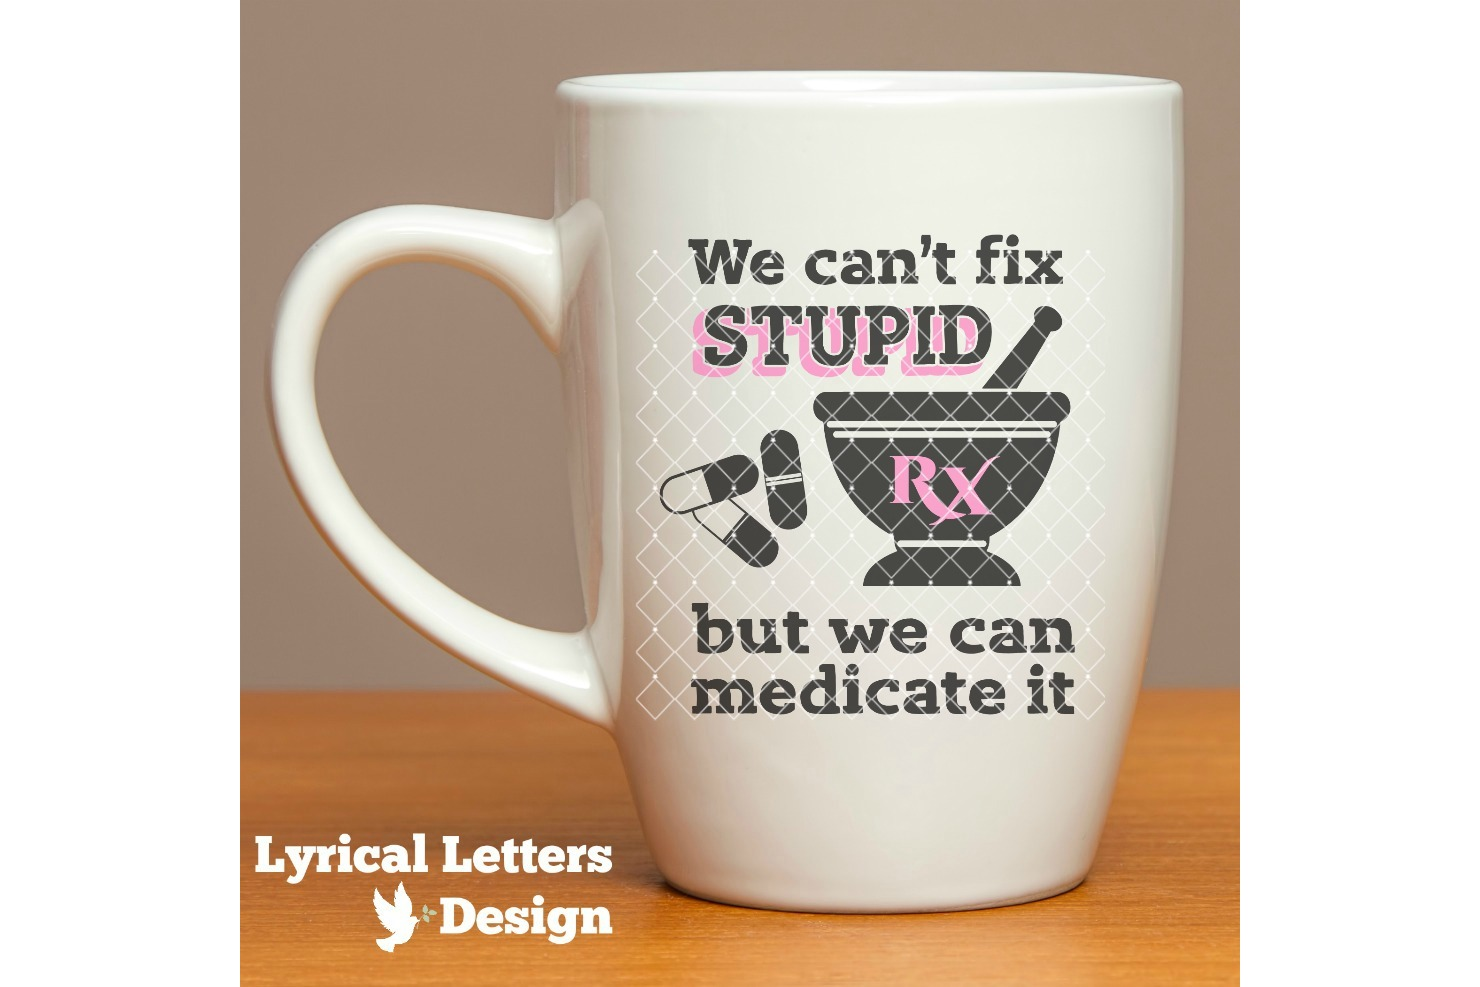 Can't Fix Stupid Pharmacy SVG DXF Cut File Ll182A example image 2